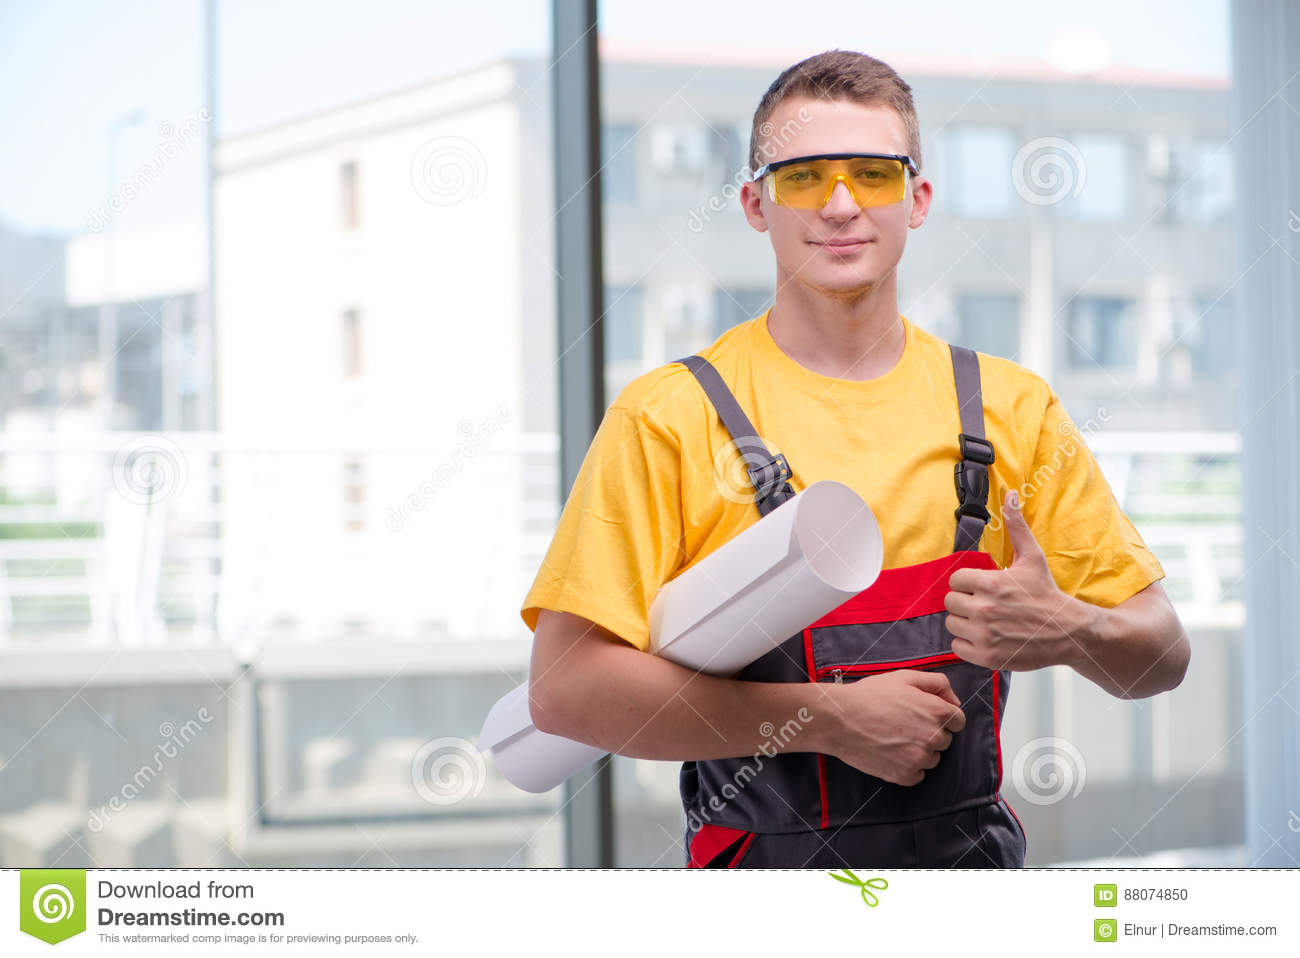 The young construction worker in yellow coveralls